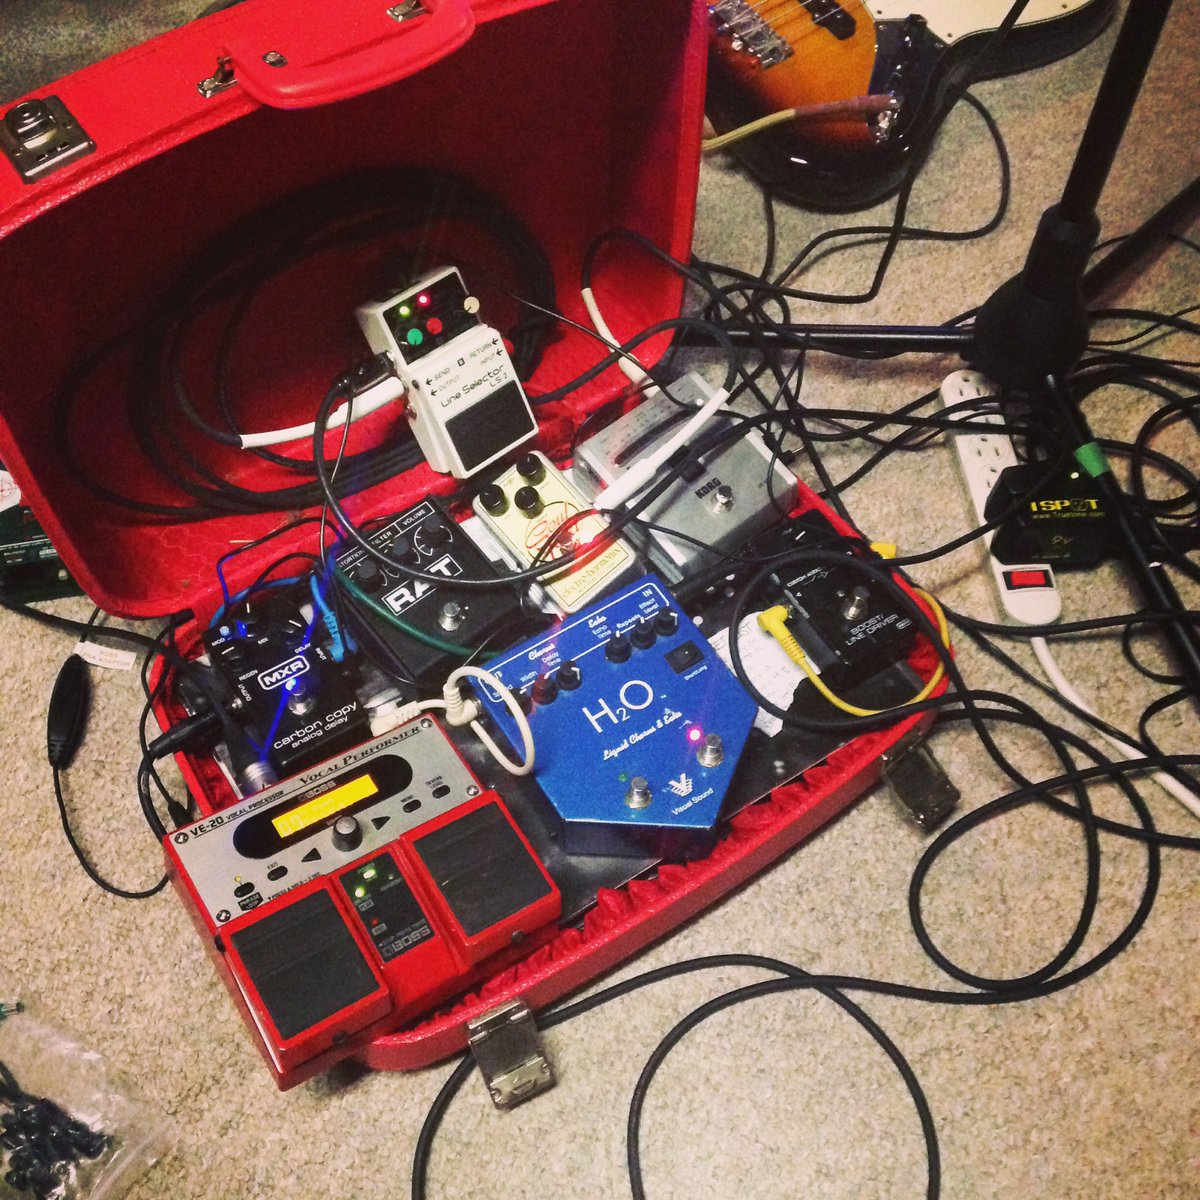 Basement Revolver On Twitter This Is Getting Outta Hand Too Many Media Wiring Pedals For Such A Small Case Https Tco J3cg1dkqxu